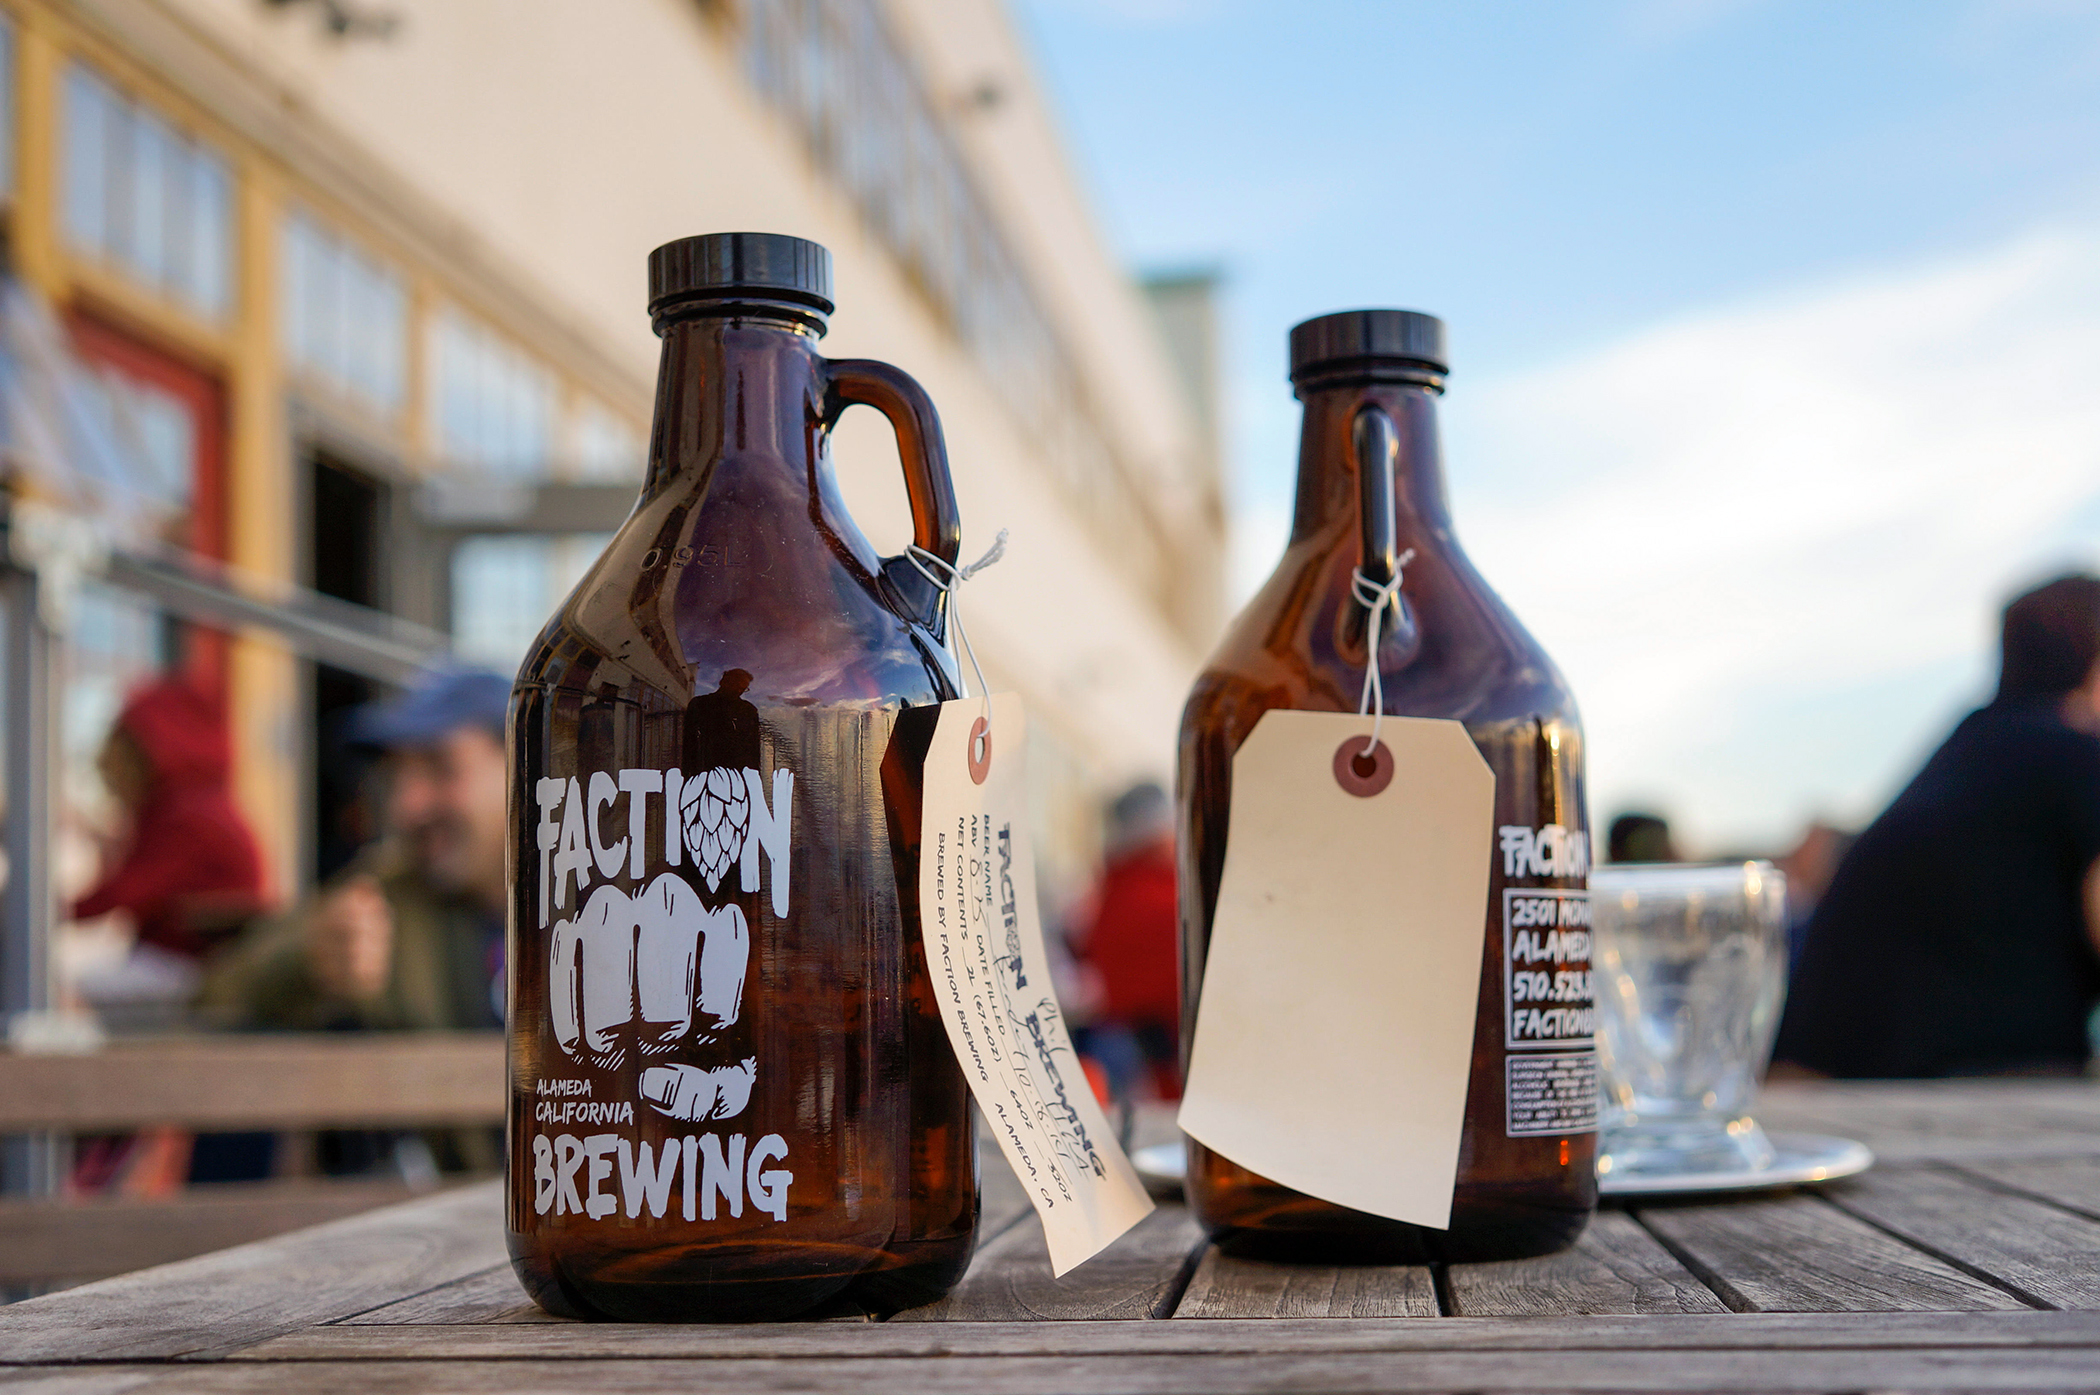 Growlers on a table outside Faction Beer Brewery, Alameda, California